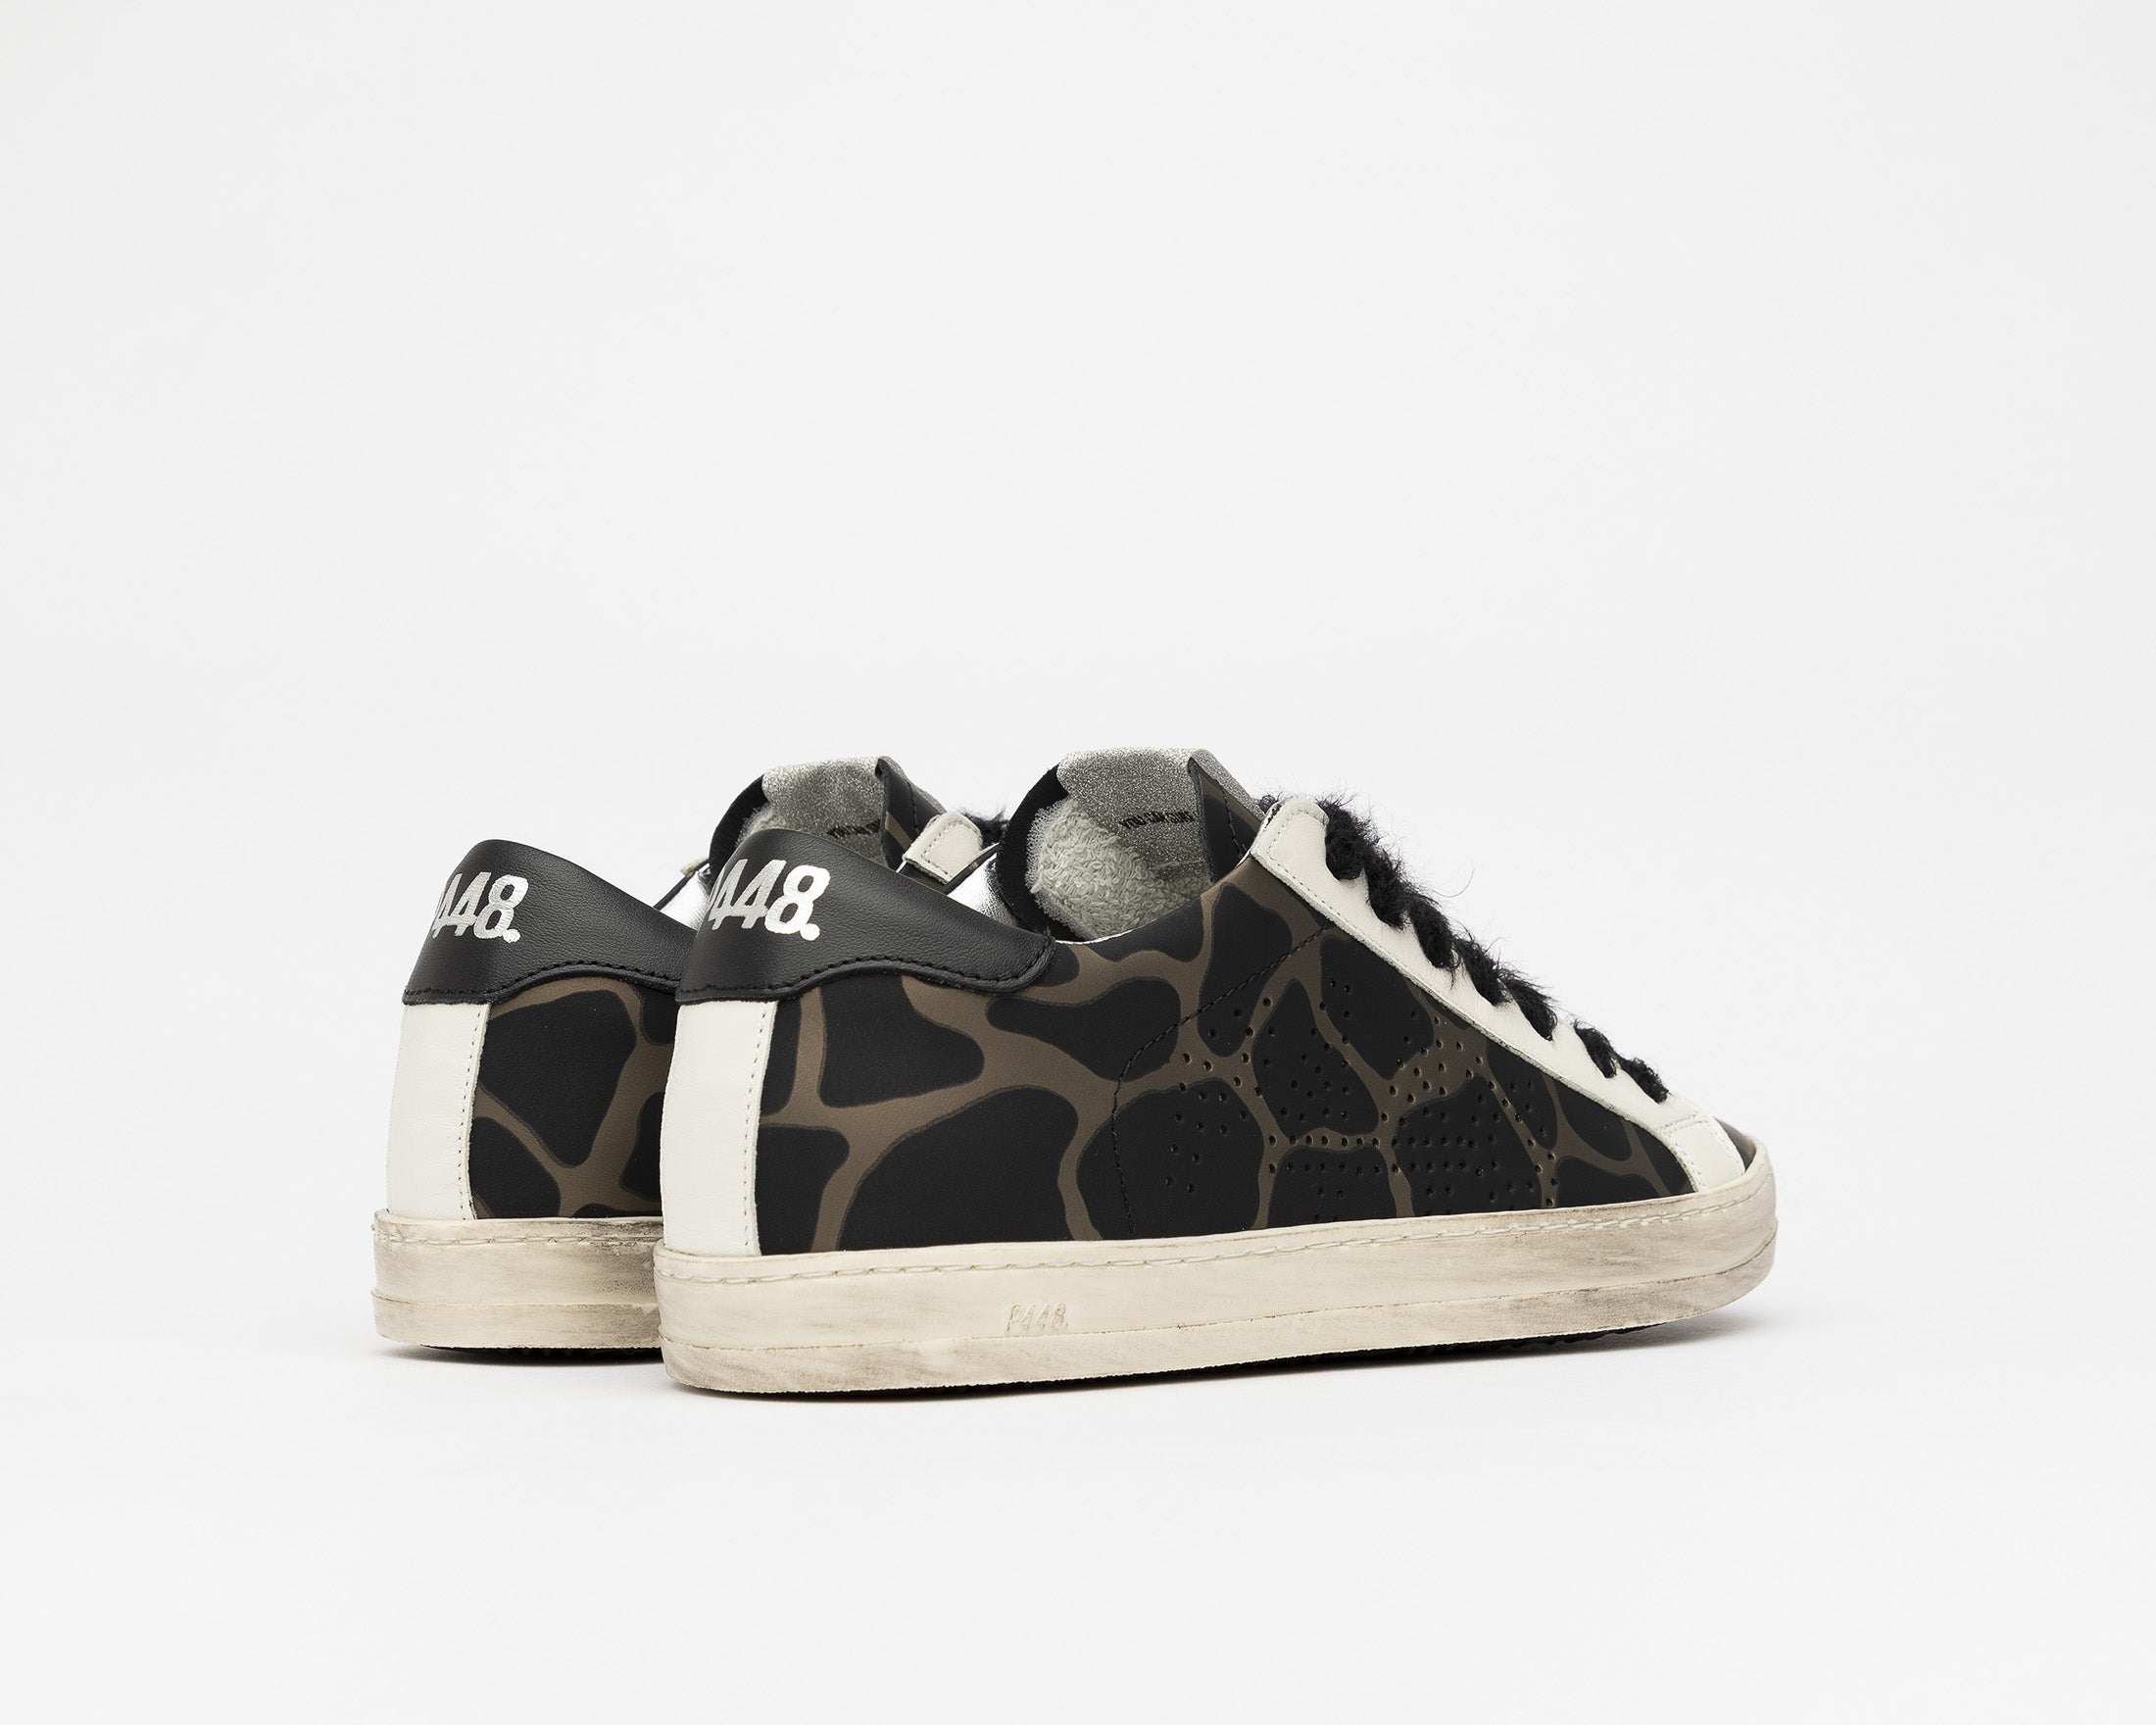 John Low-Top Sneaker in Army Giraffe - Back